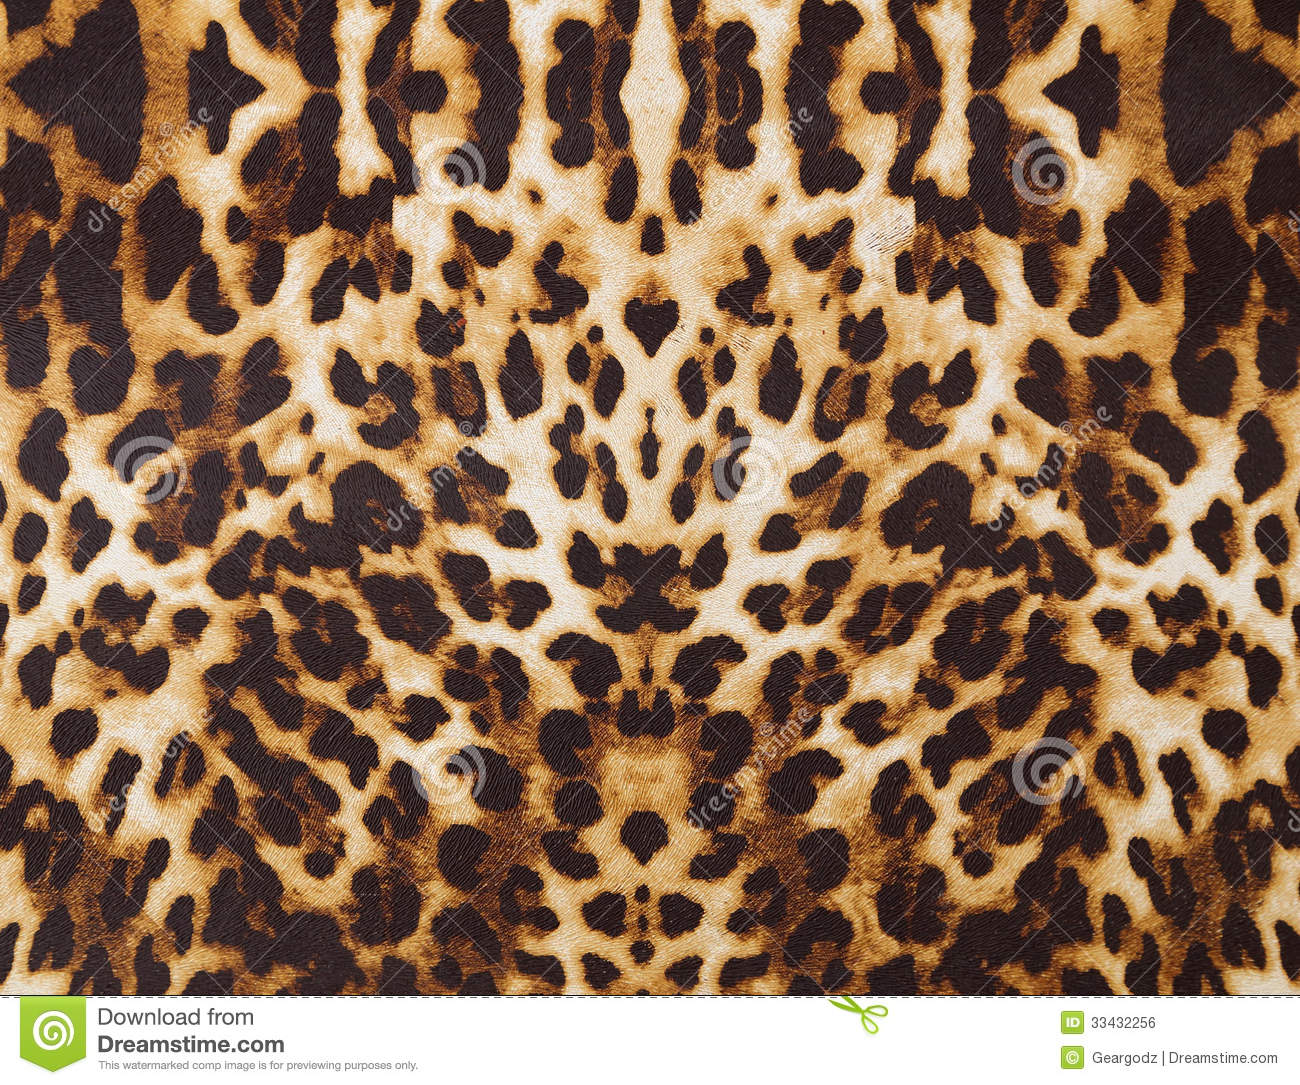 Cheetah Print Wallpaper Hd Background With Leopard Texture Royalty Free Stock Image